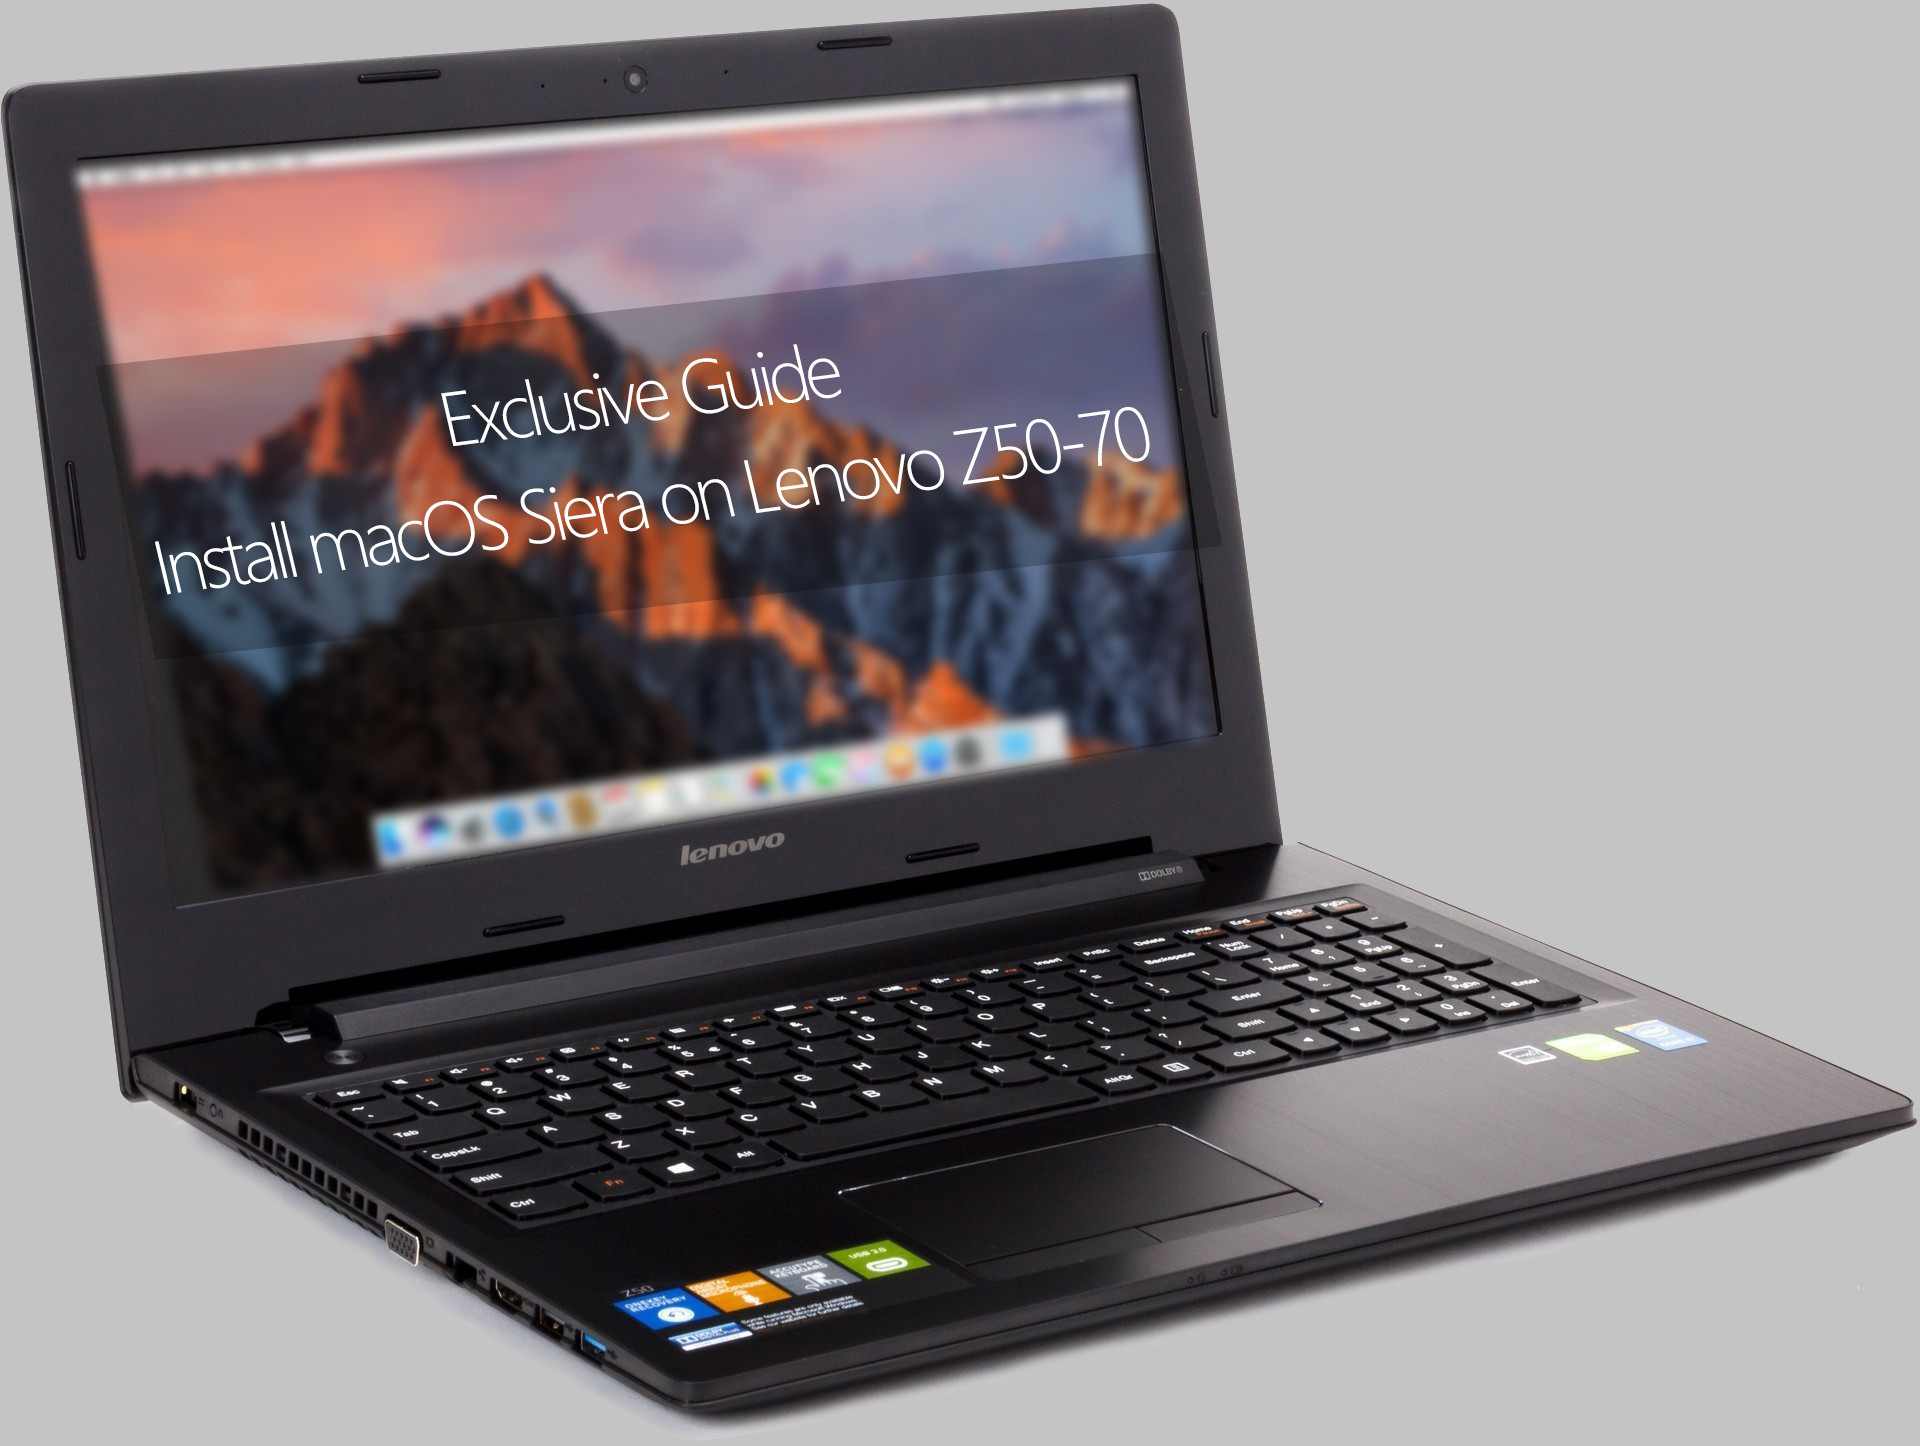 Exclusive Guide] Install macOS Sierra on Lenovo Z50-70/ Z40/ G50